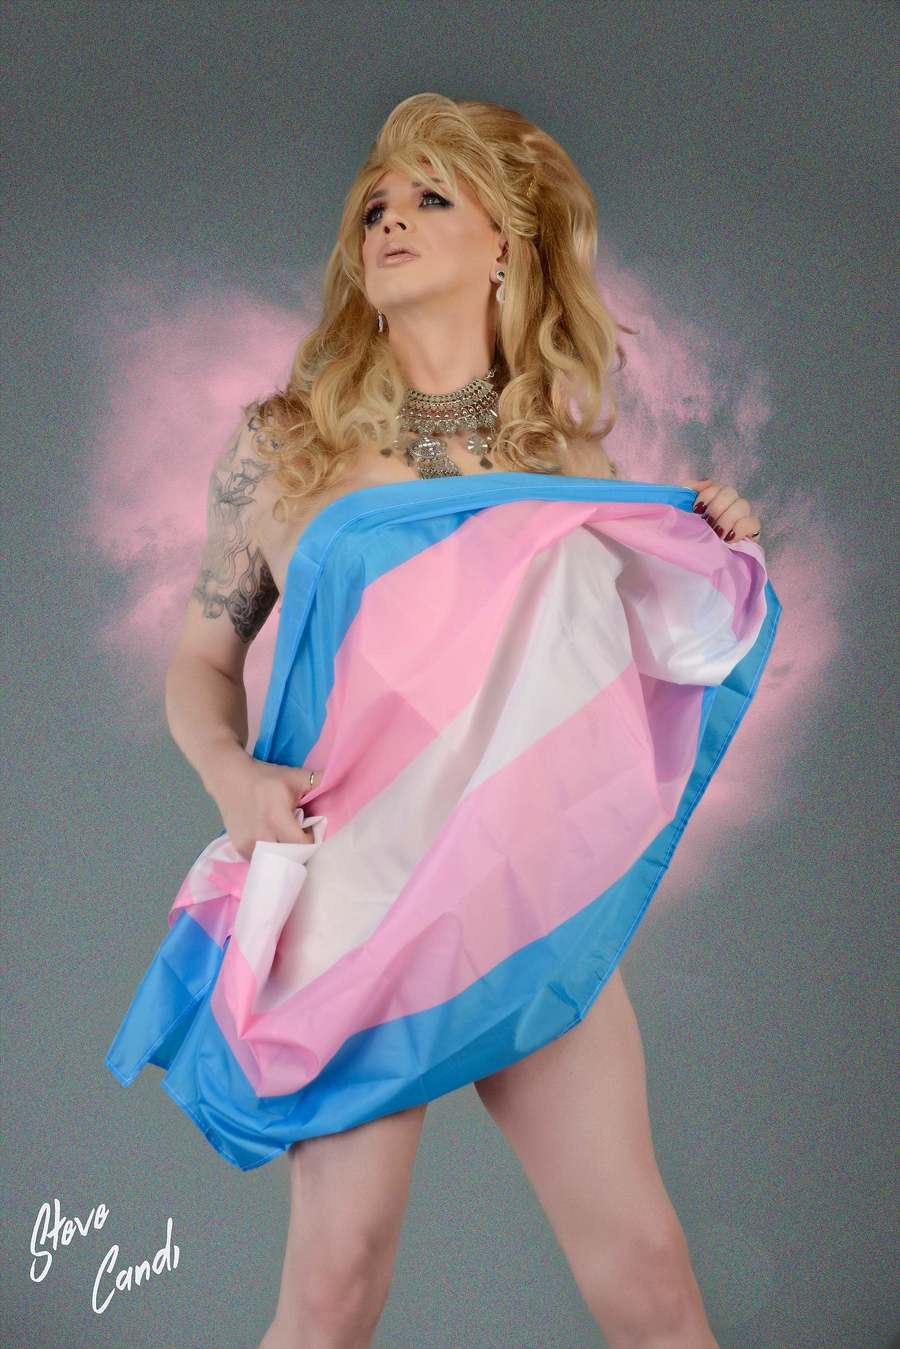 Trans & Proud / Photography by Steve Candi1, Model Louise Honey / Uploaded 11th May 2019 @ 02:58 PM